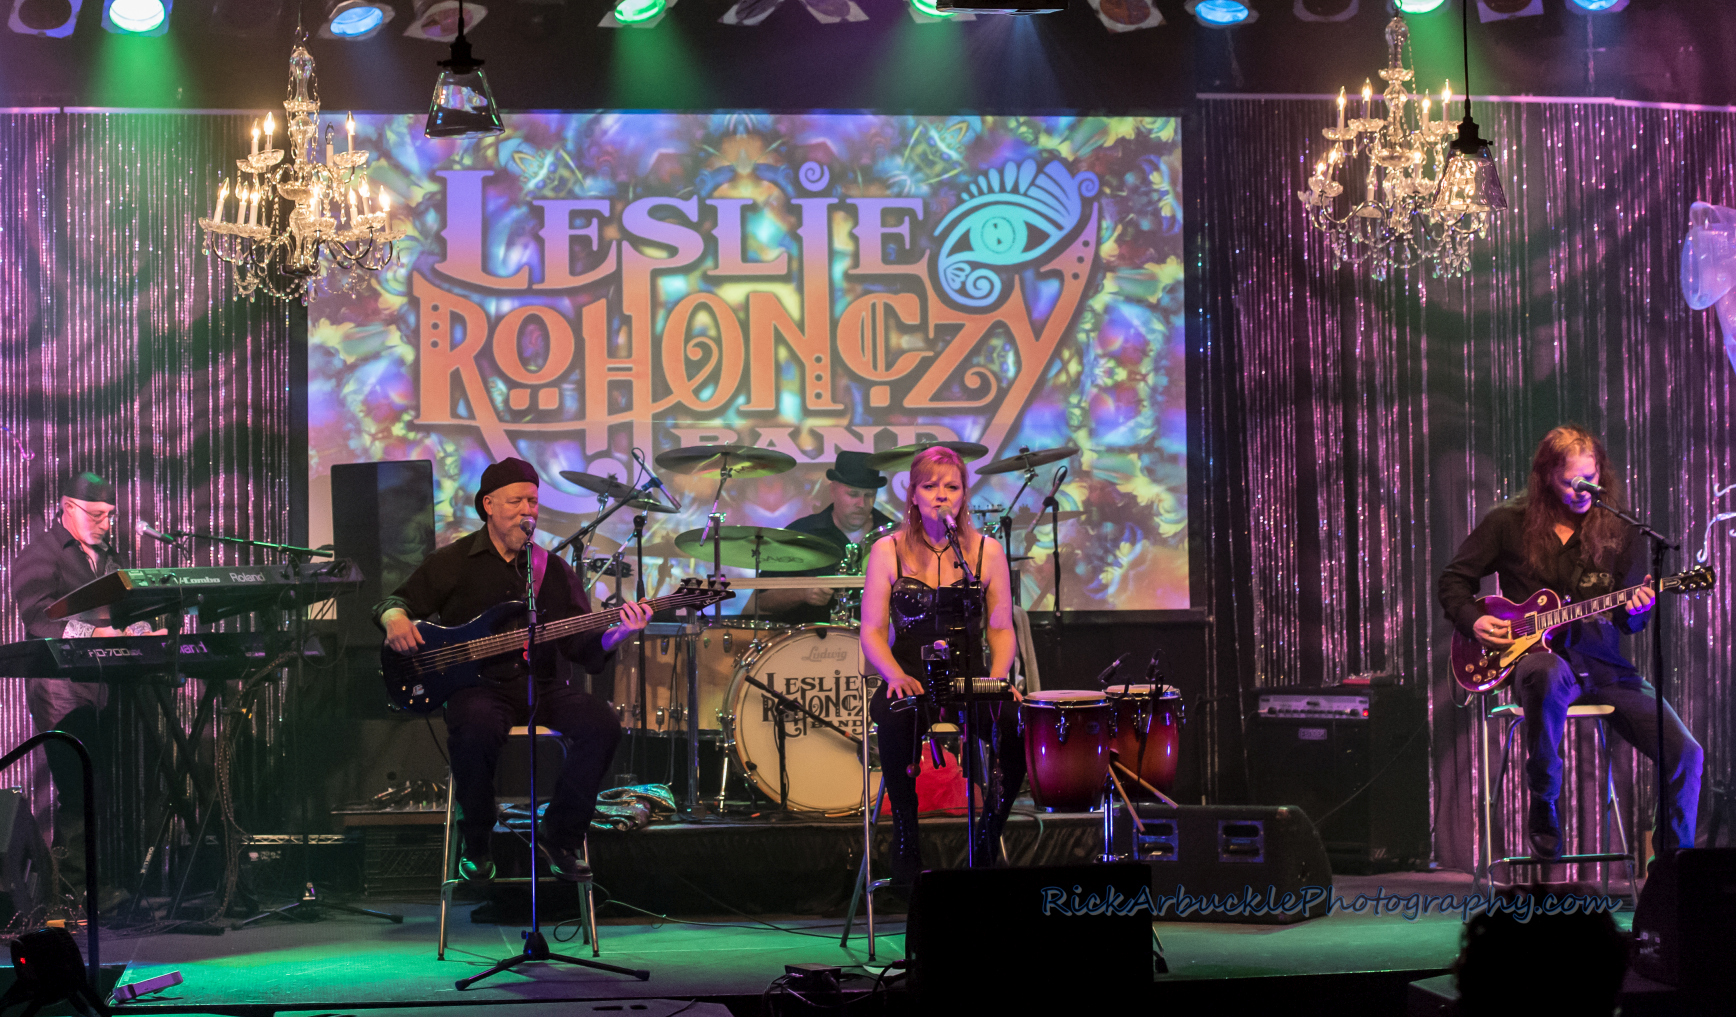 Leslie Rohonczy Band - Greenfield's 2016 12 09  17